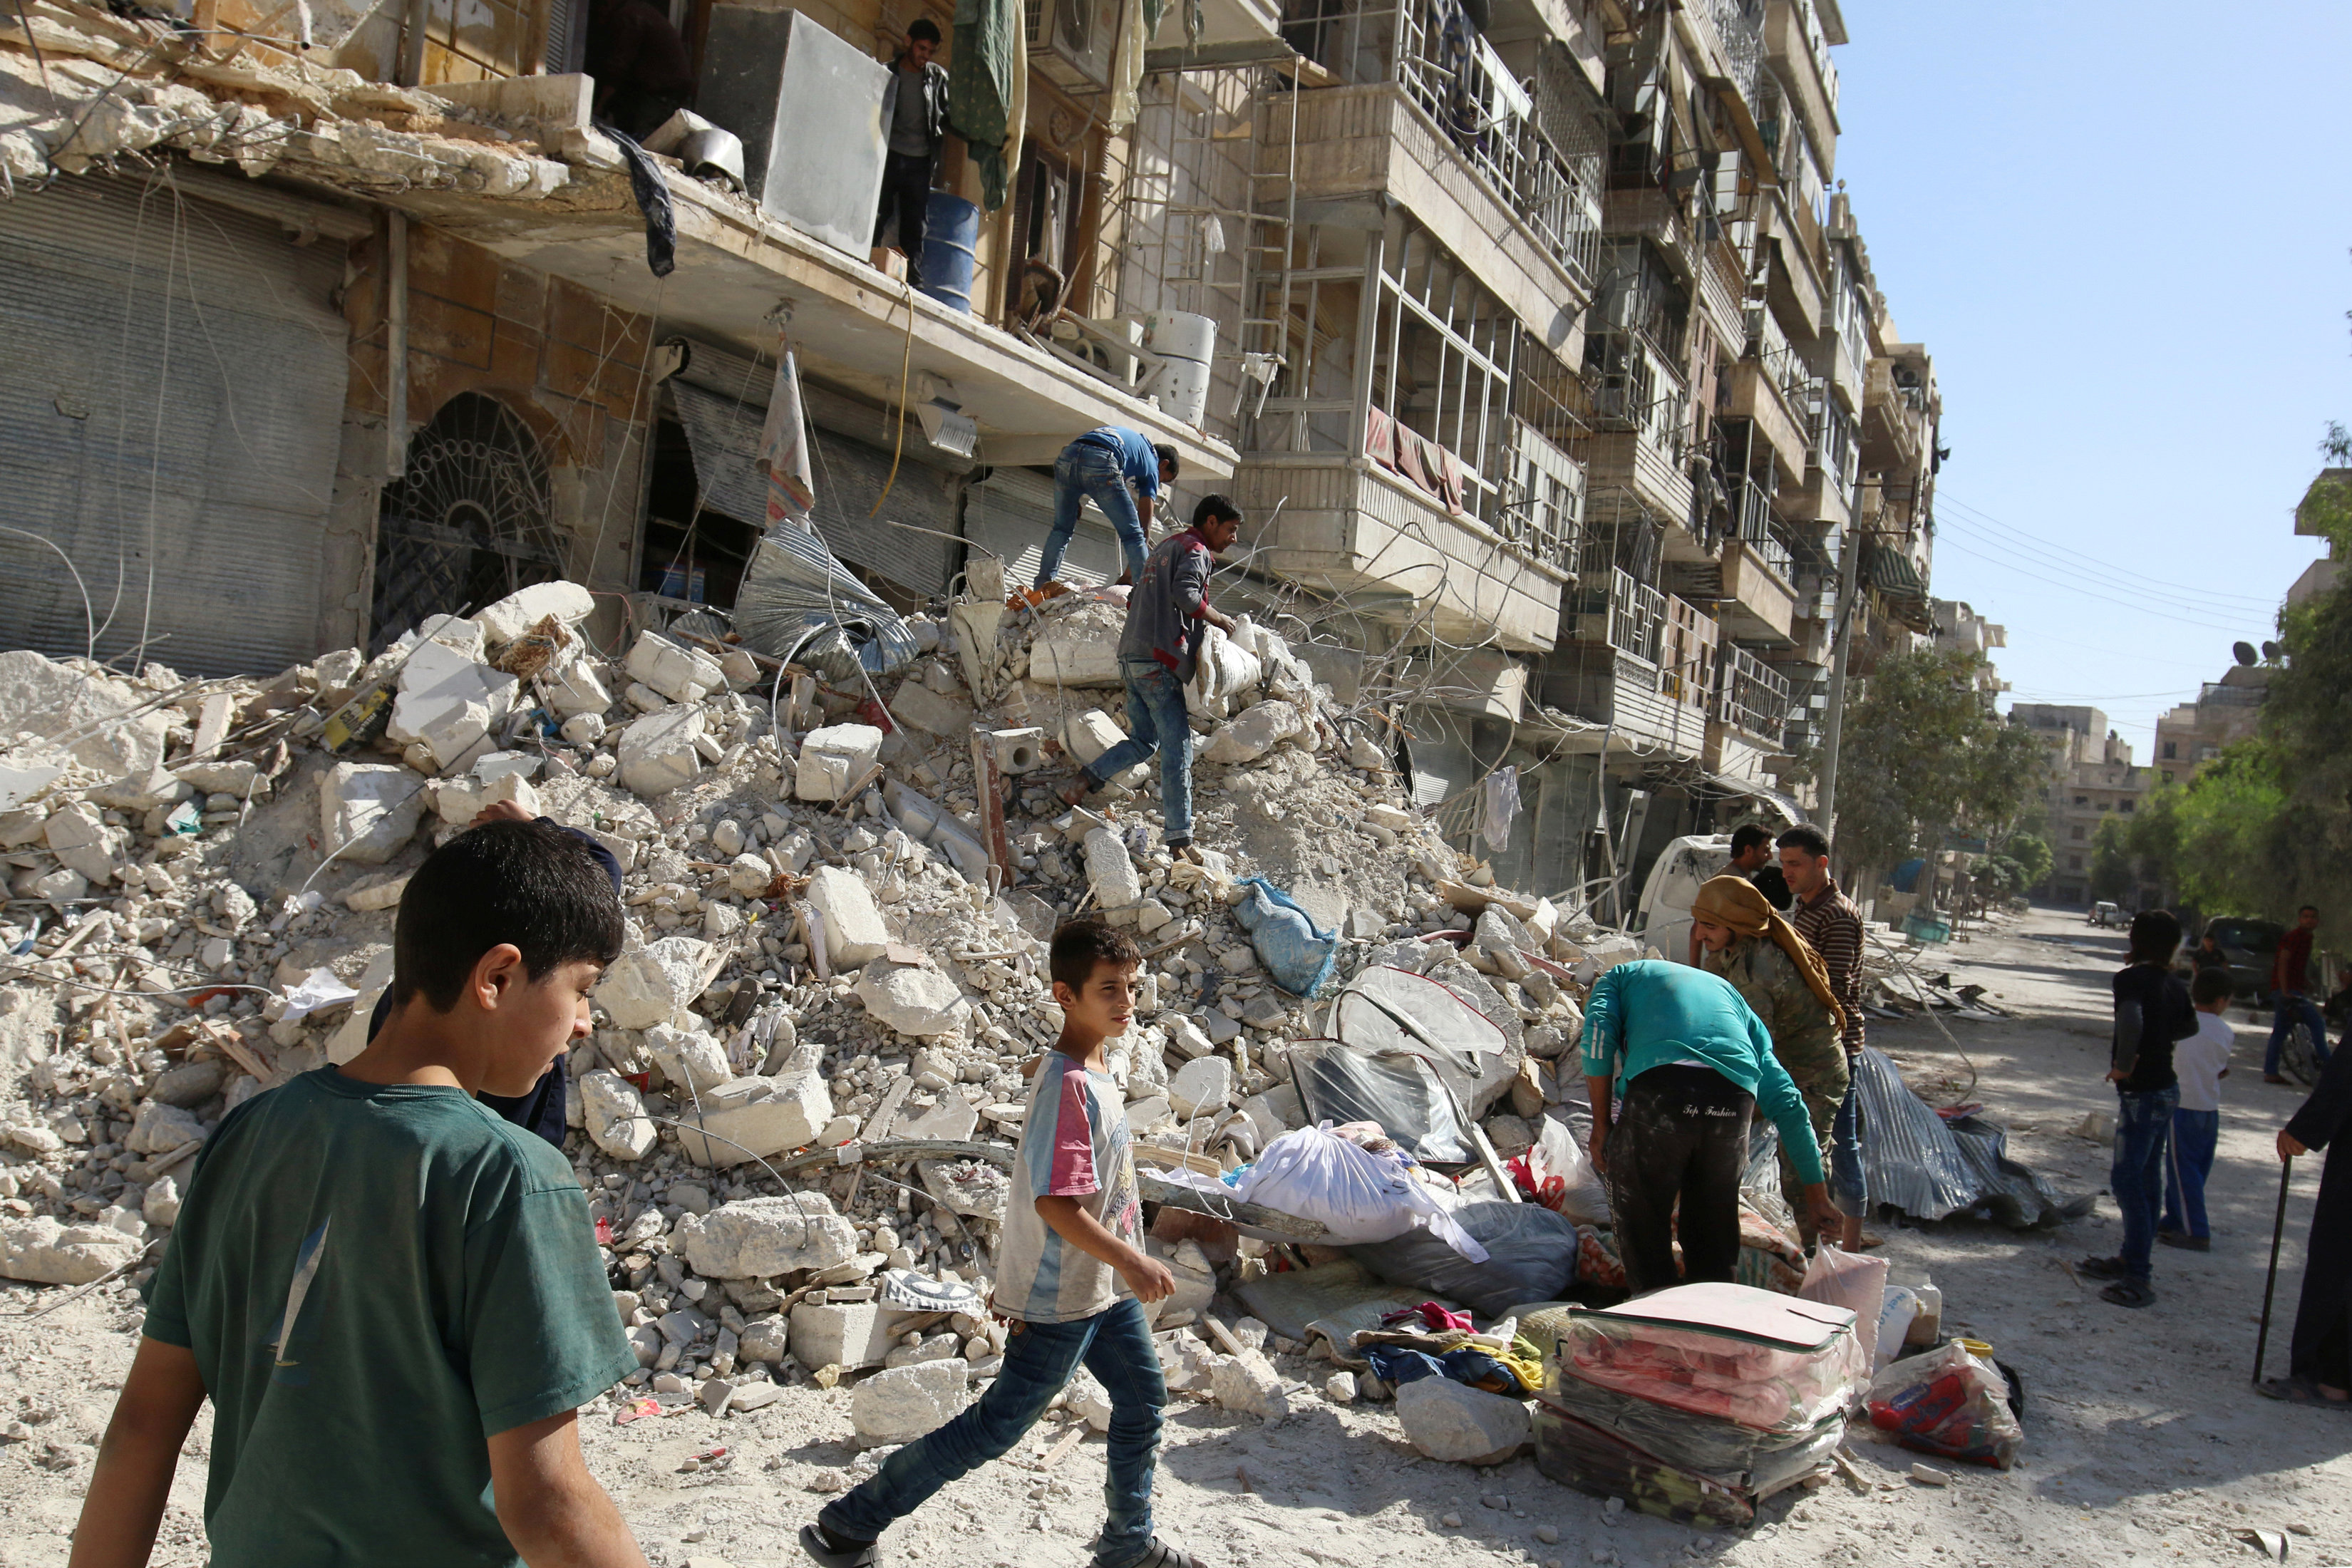 People remove belongings from a damaged site after an air strike Sunday in the rebel-held besieged al-Qaterji neighbourhood of Aleppo, Syria